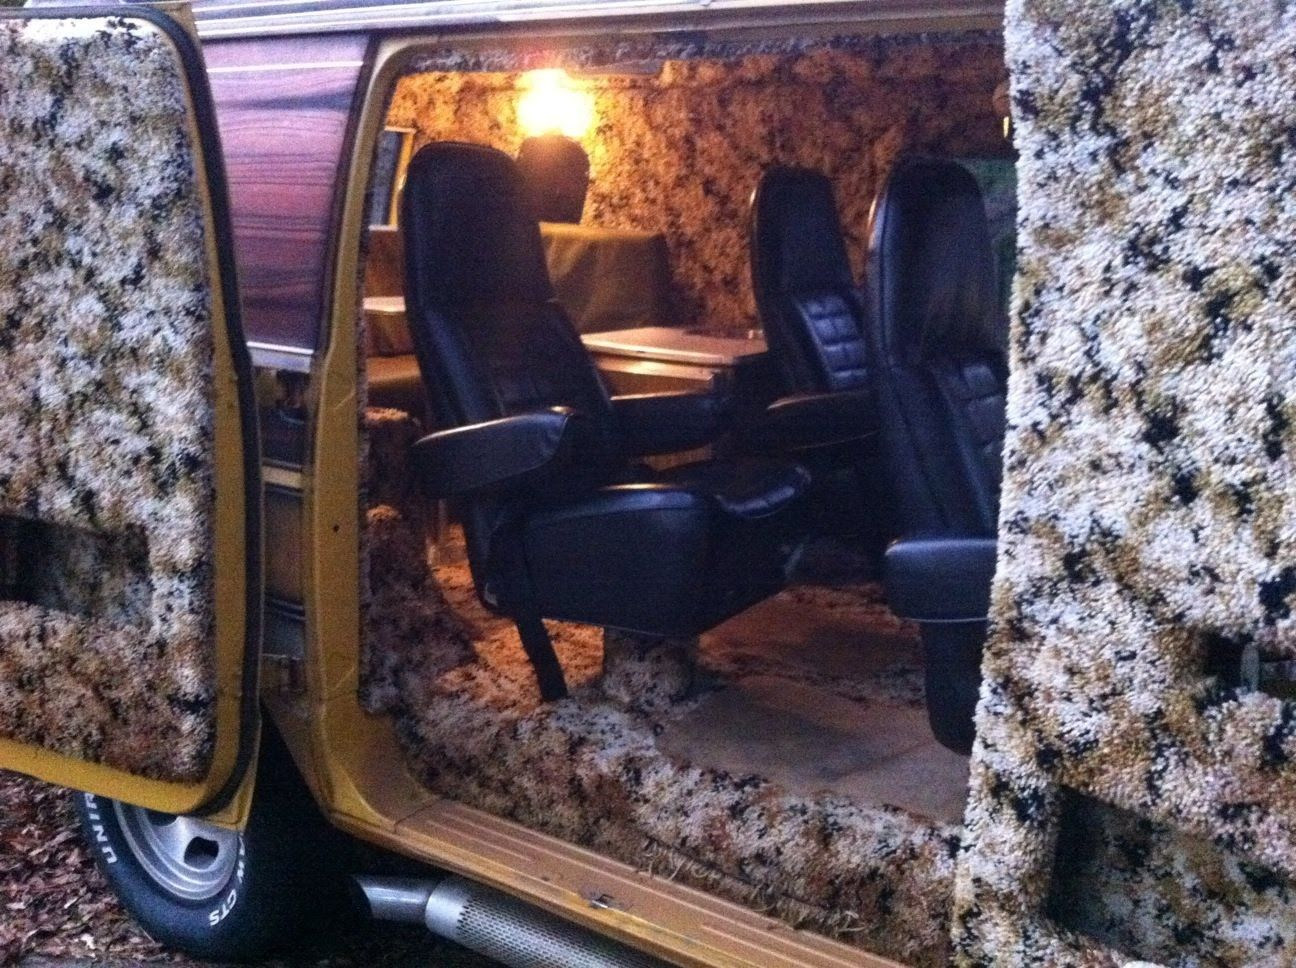 Dodge Tradesman Camper Van 77 Dodge Camper I Love The Wall To Wall Shag Carpet This Is So Up My Alley Custom Van Interior Chevy Van Vintage Vans